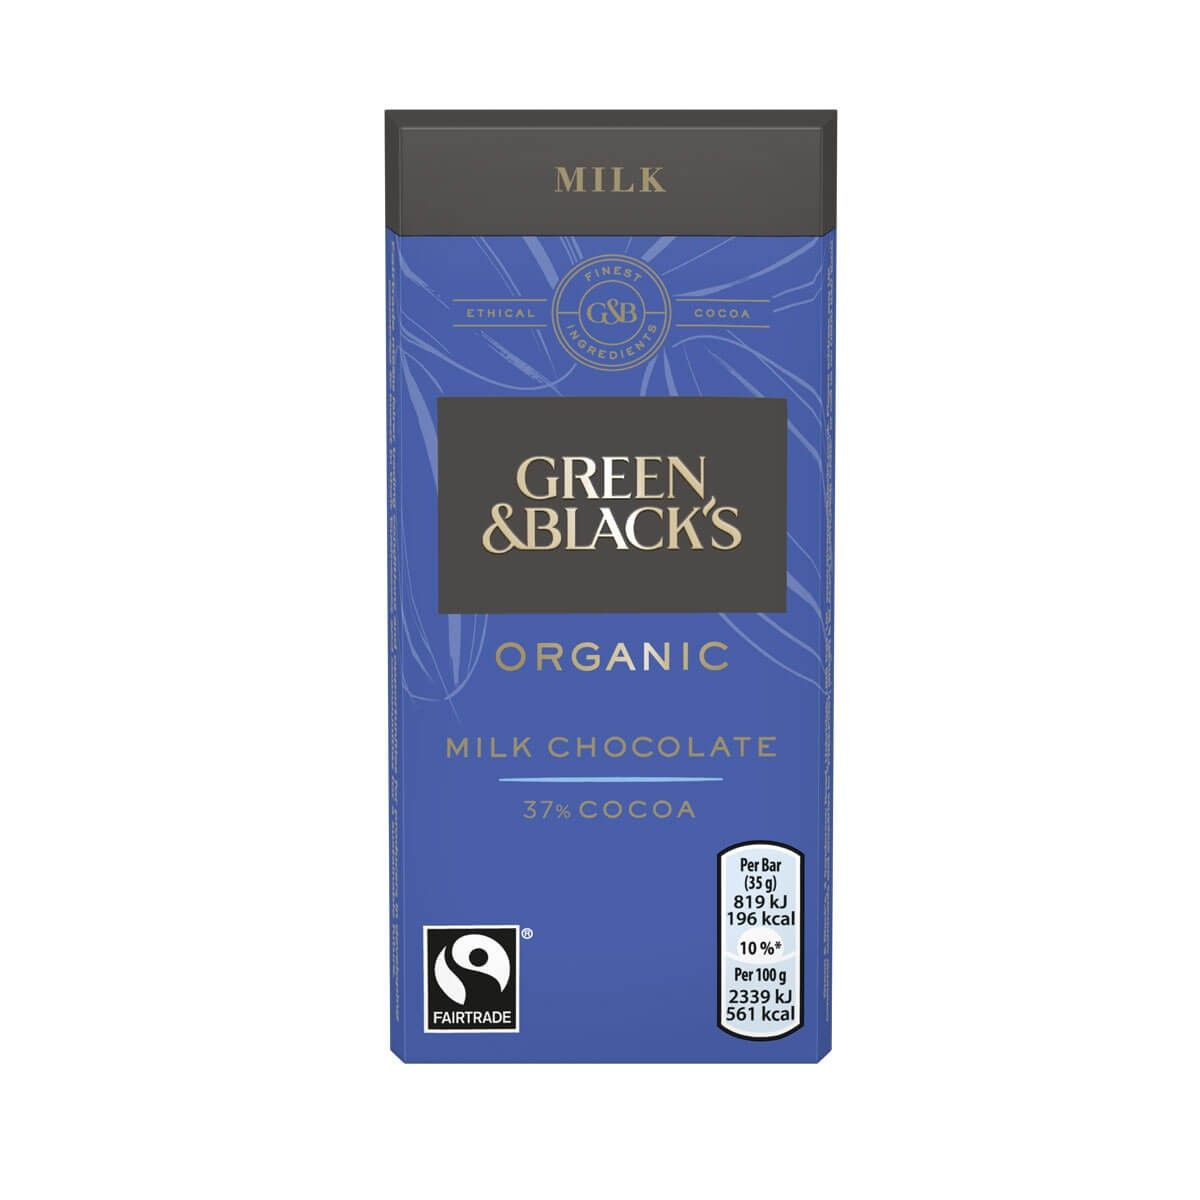 Green & Blacks Milk